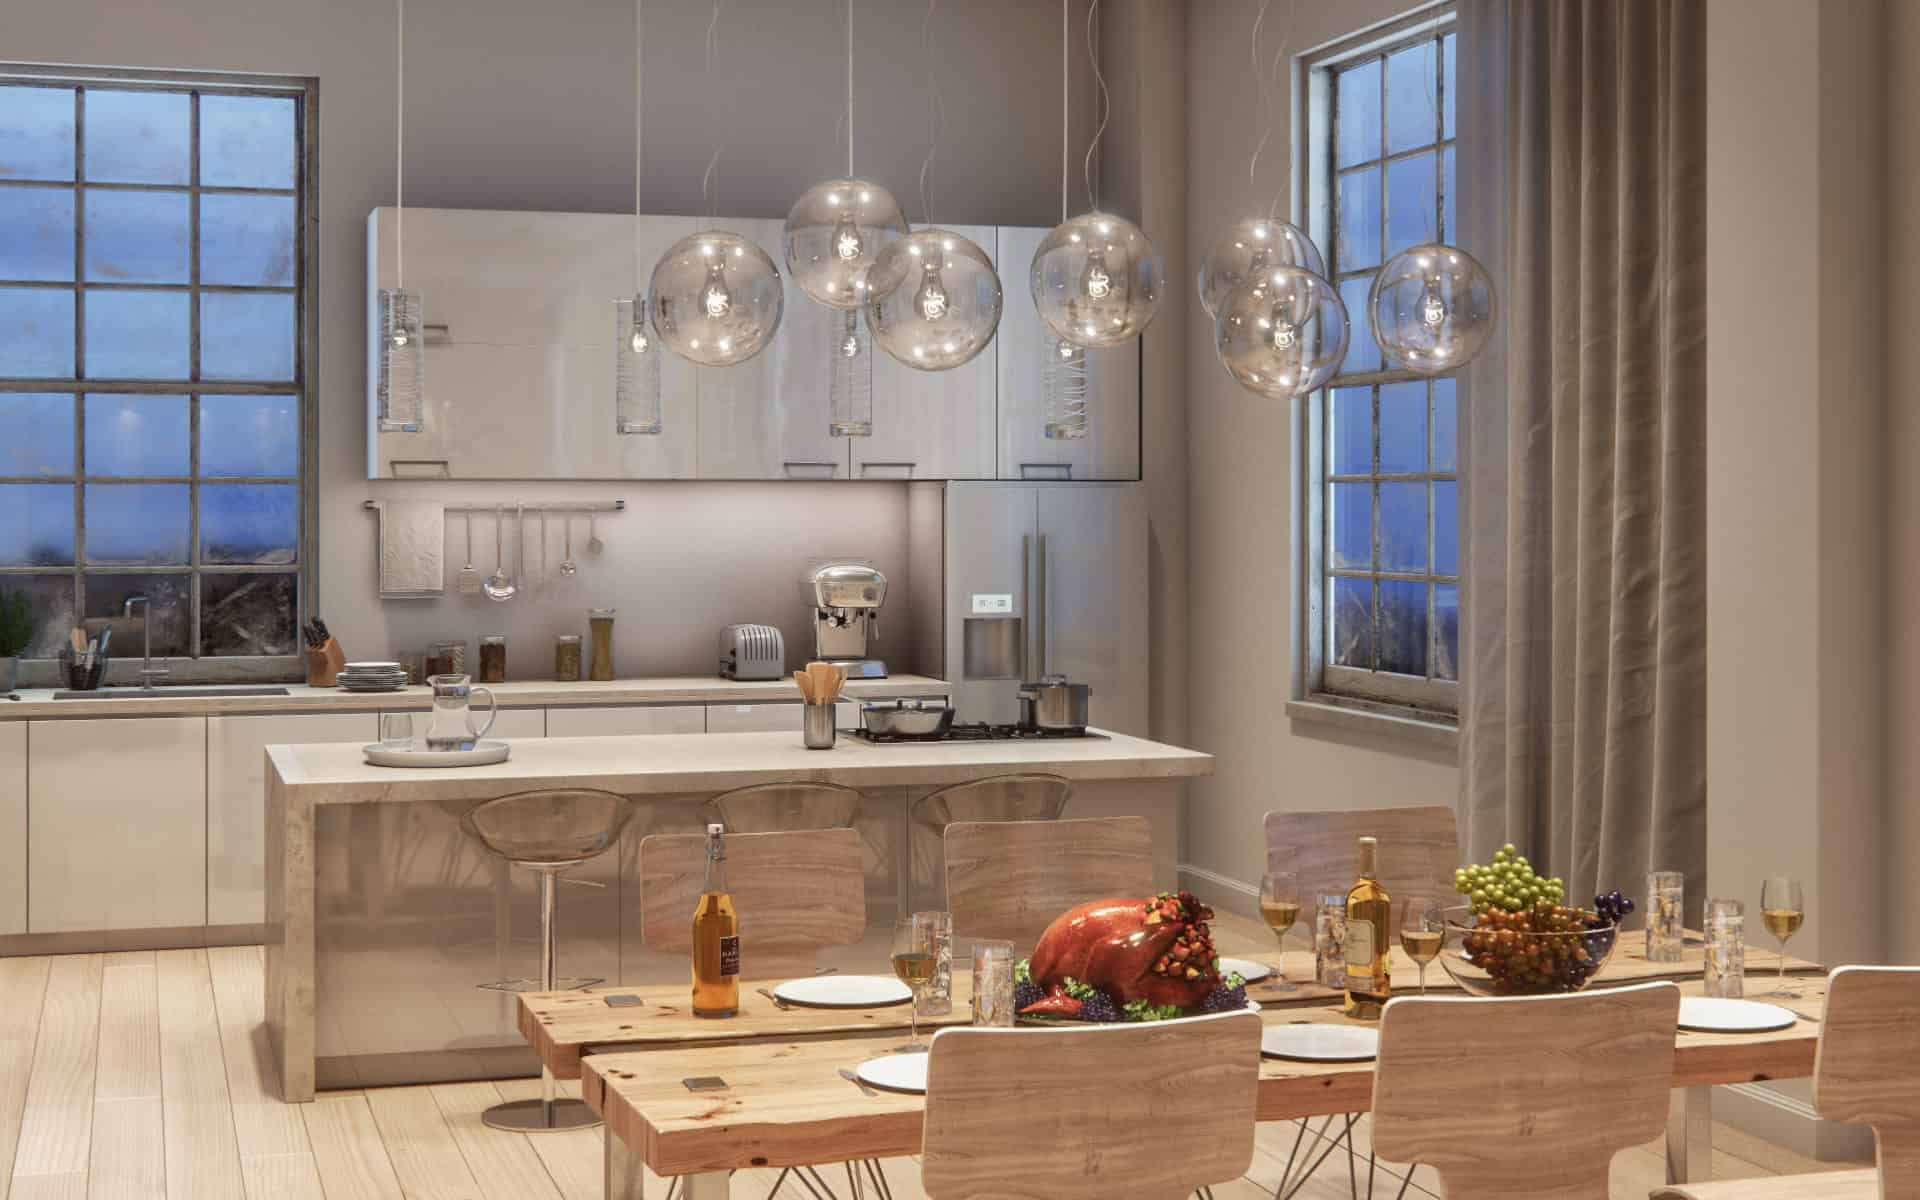 This modern loft kitchen features different wood tones and patterns and marble top kitchen island.